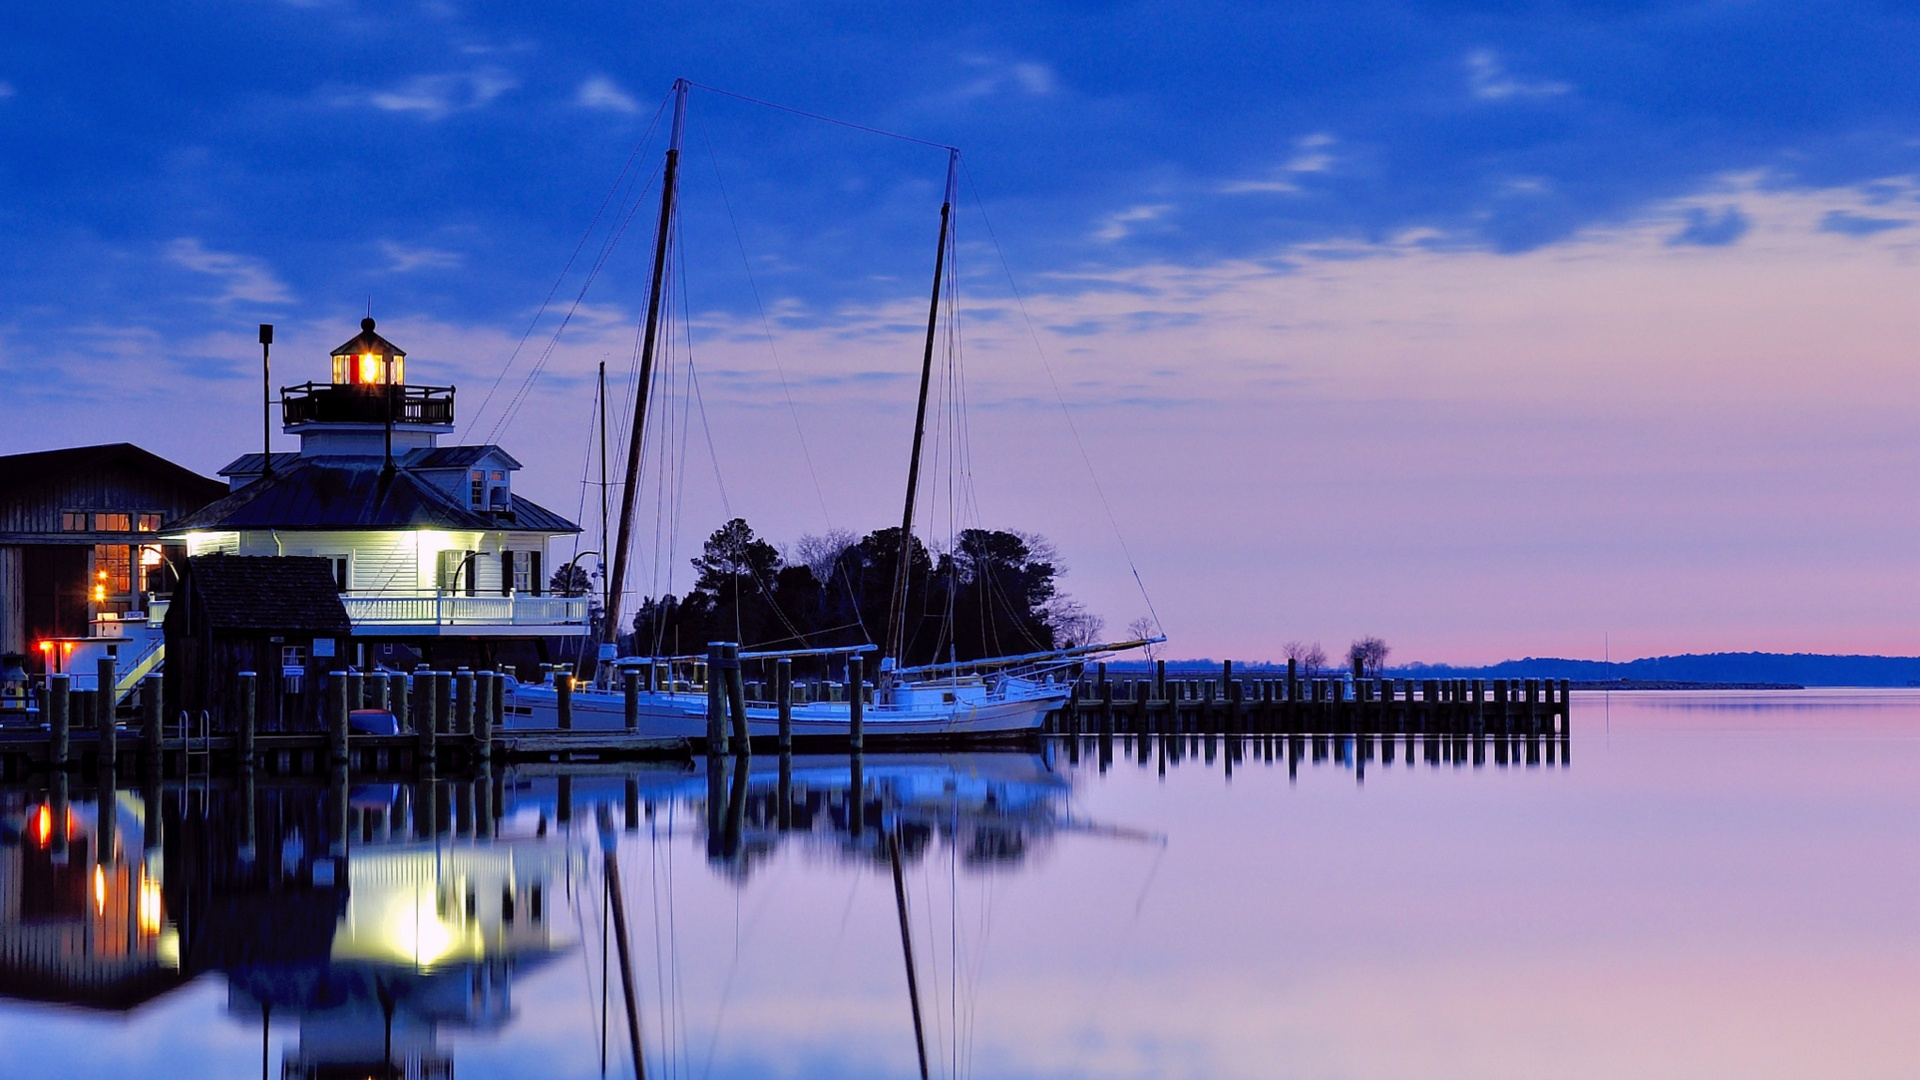 Wallpaper Usa Maryland Lighthouse Bay Night Blue Sky Water Reflection 19x10 Hd Picture Image